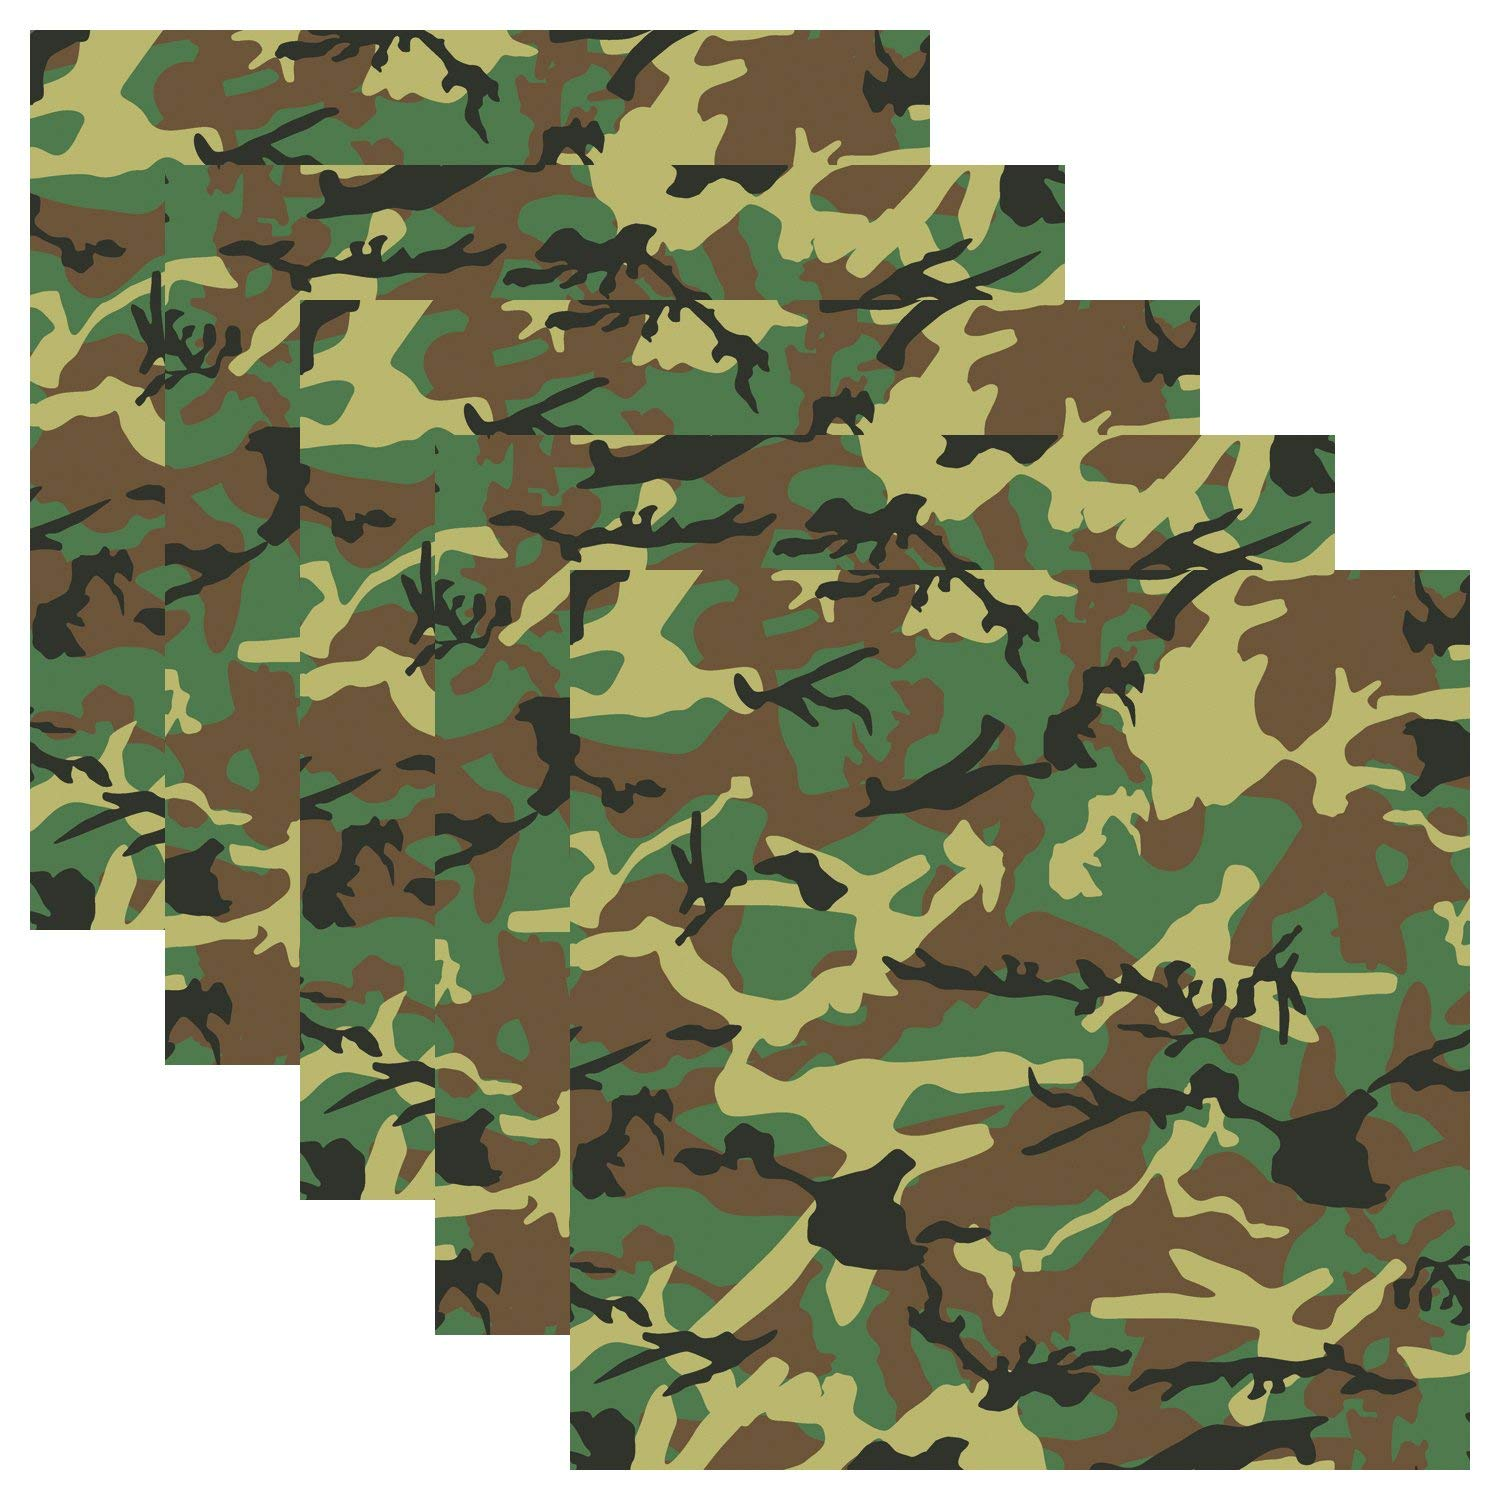 """Camouflage Self Adhesive Assorted Vinyl Sheets 12"""" x 12"""" Military Camo Permanent Adhesive Backed Vinyl for Cricut, Silhouette Cameo, Plotters, Decals and Other Craft Cutters - Army Green Pack of 5"""